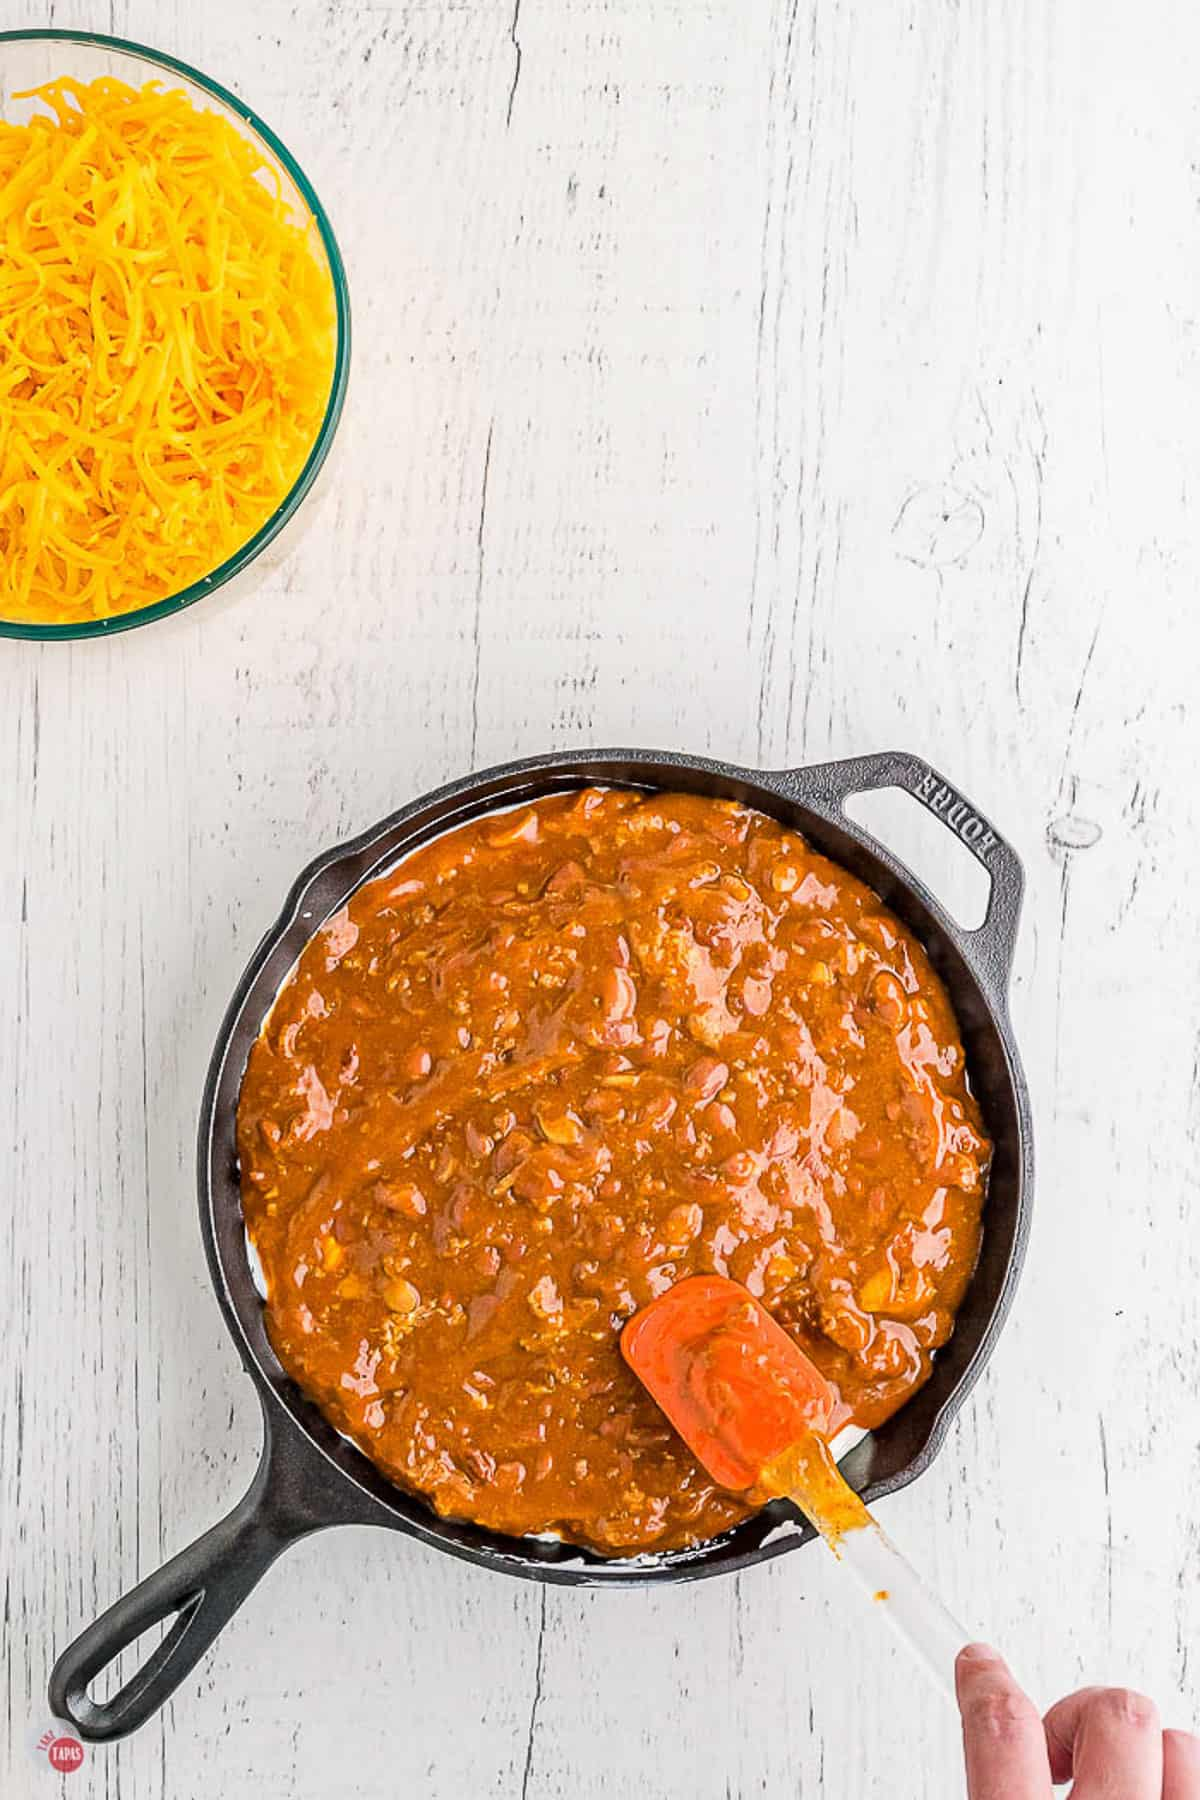 chili in a skillet with a spatula